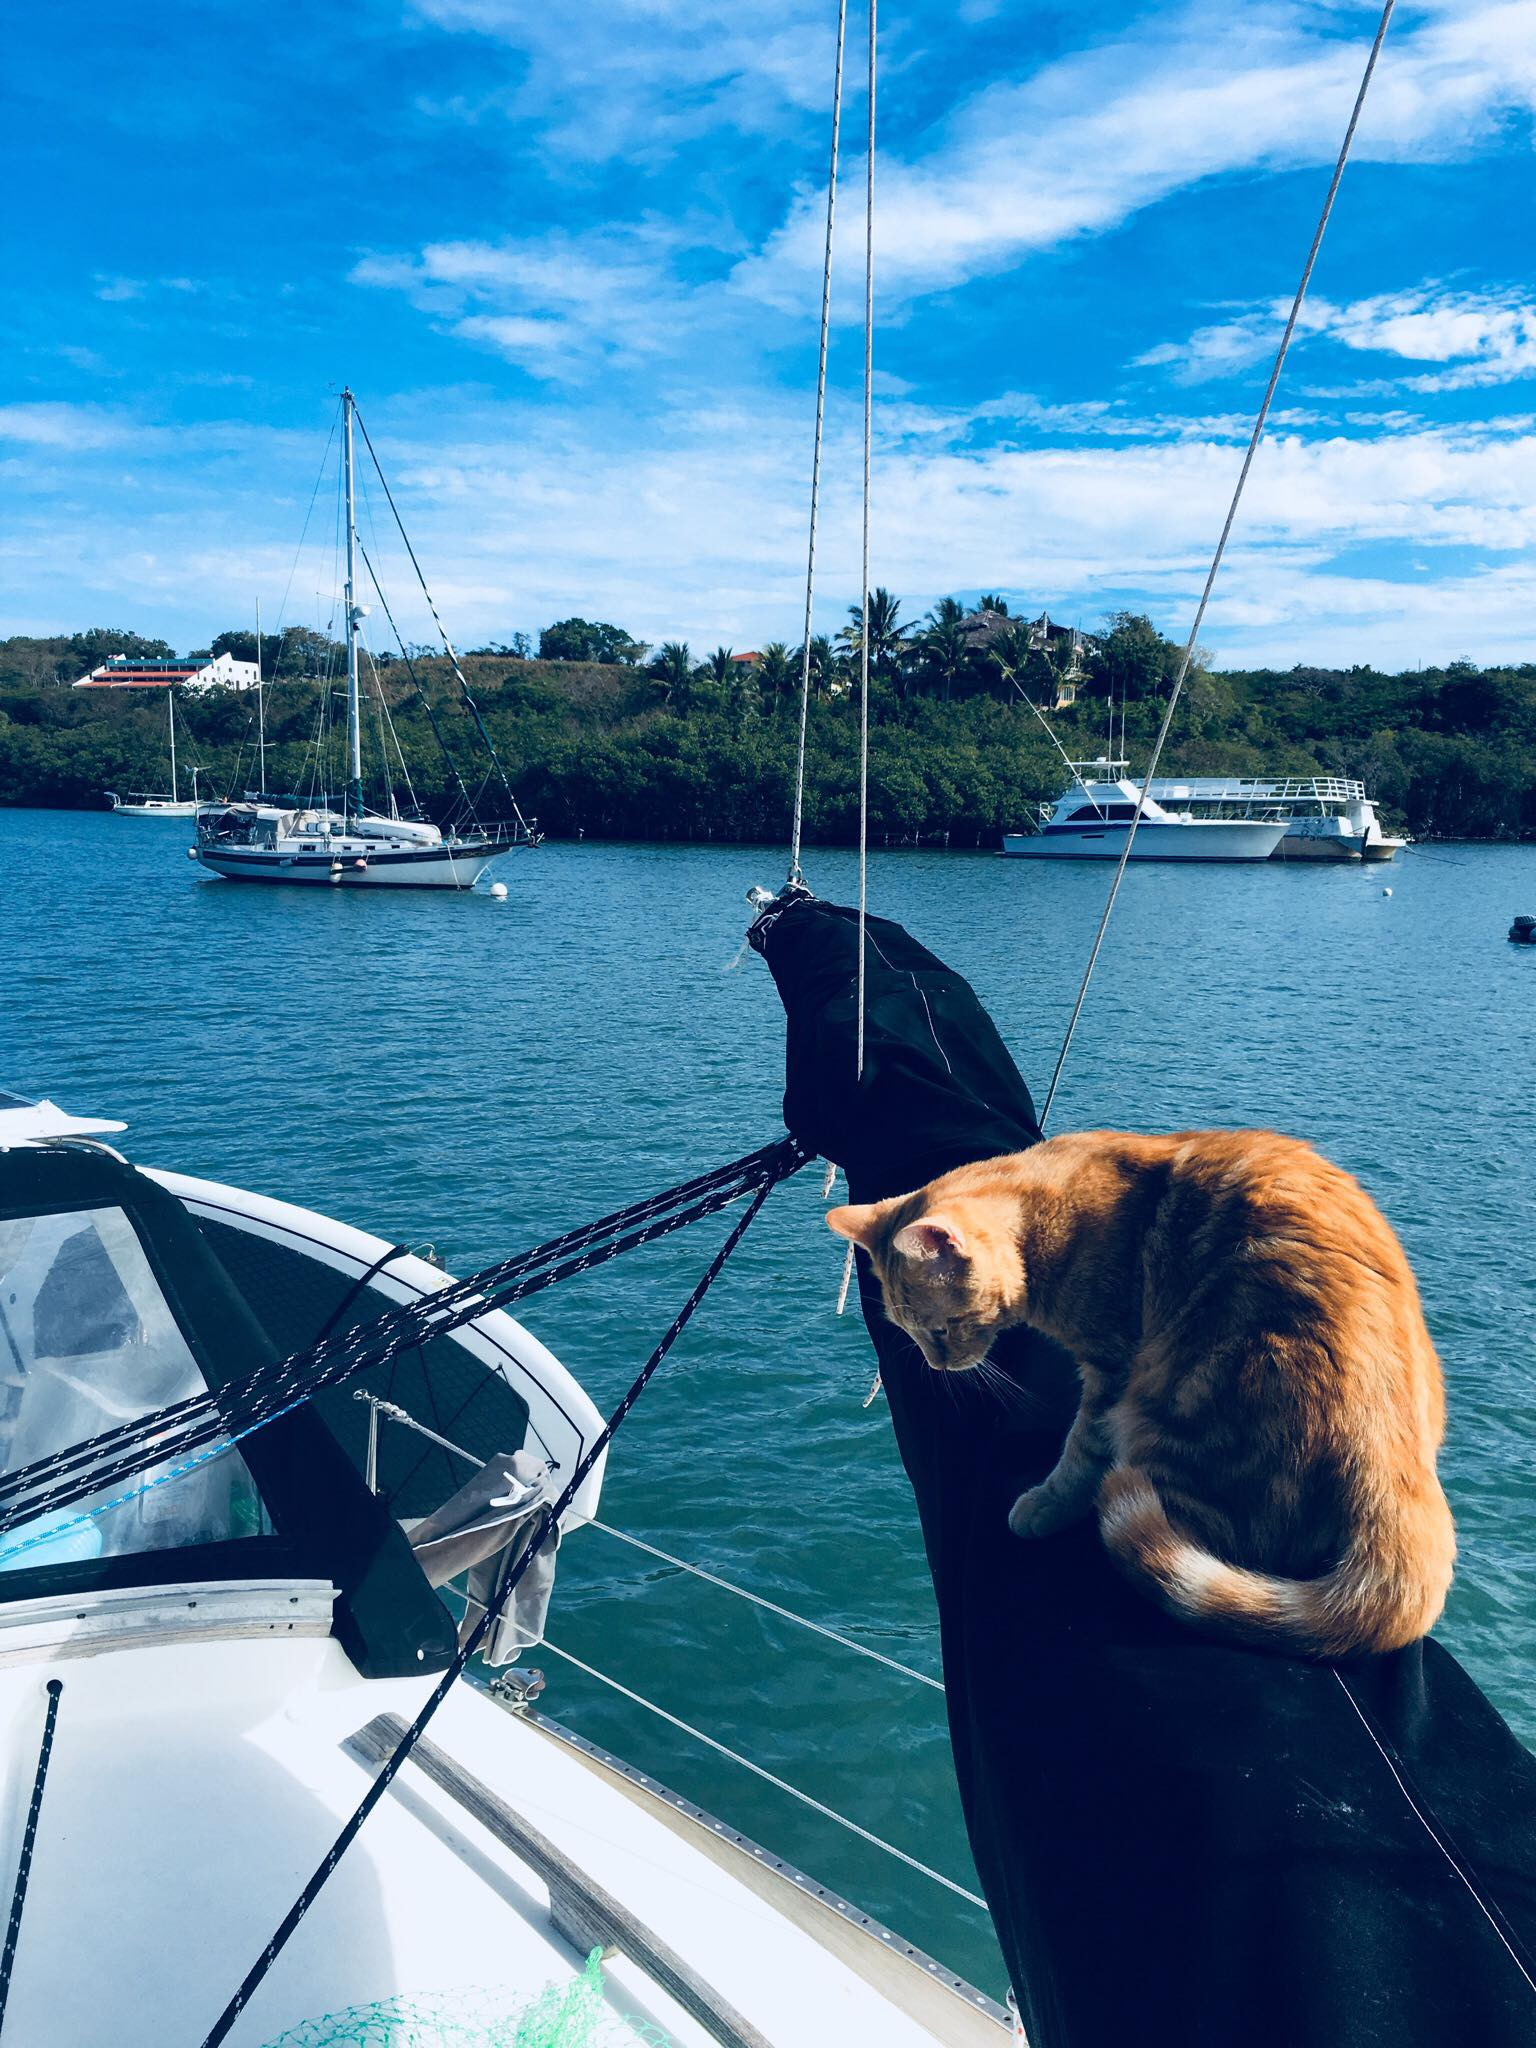 Liveaboard Life Day 93 - 95: Back to Housewife / Cat Mommy Duties + Non-Stop Online Work Schedule